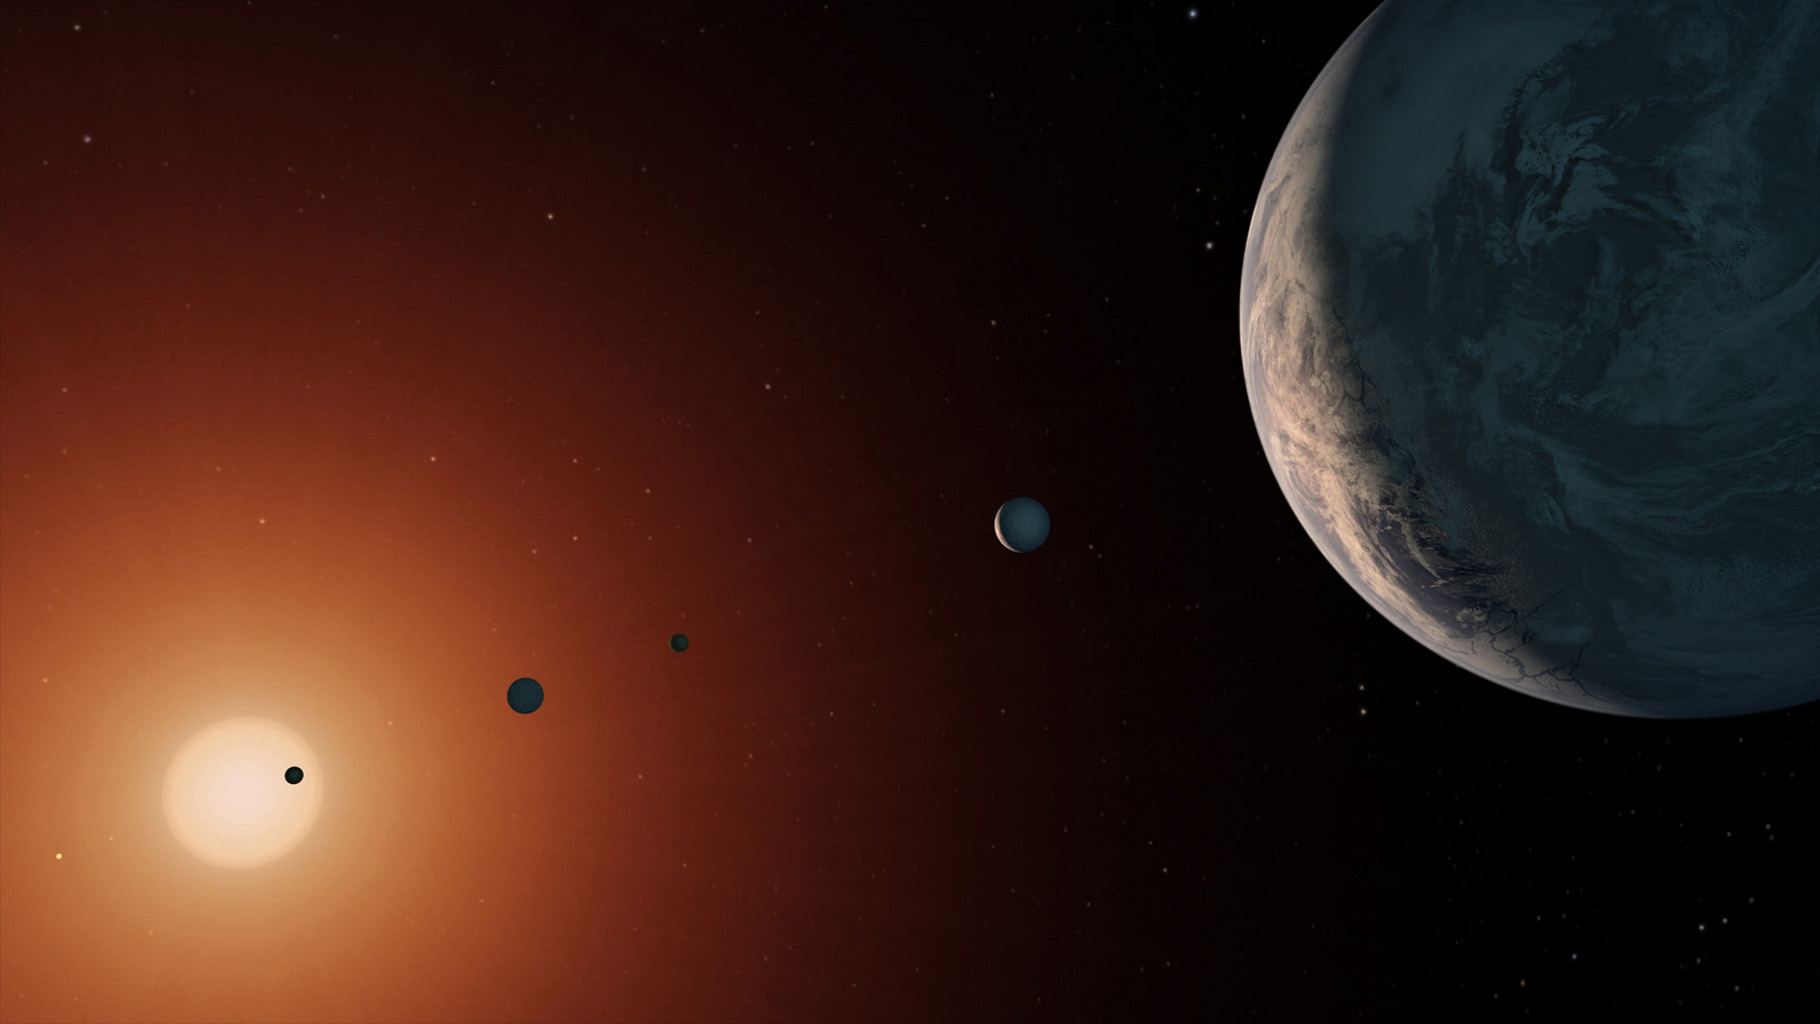 trappist 1 is older